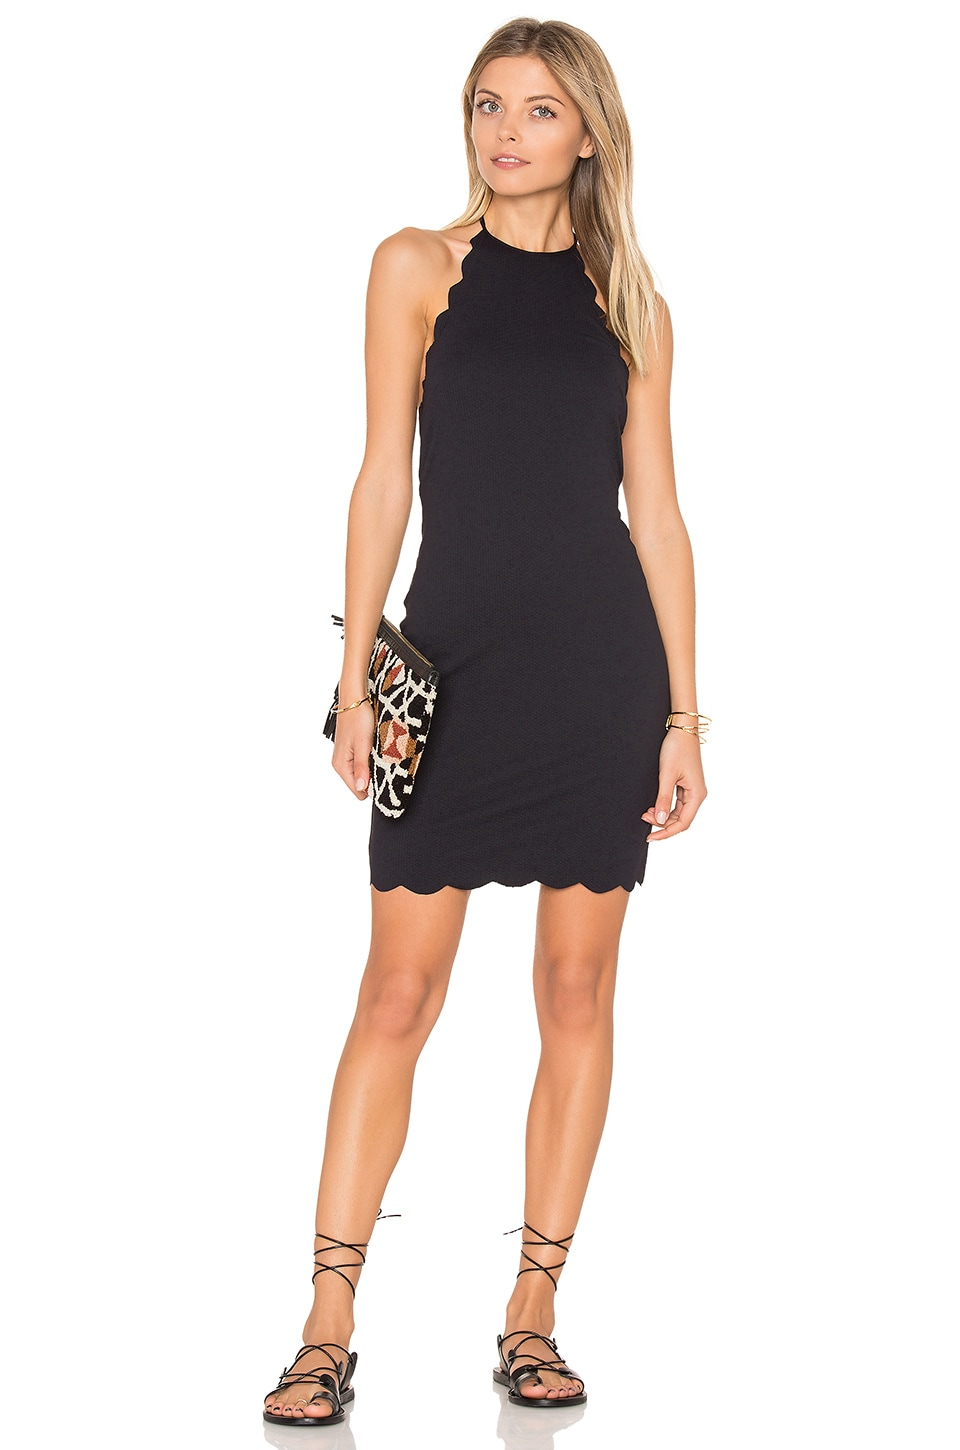 Marysia Swim Mott Dress in Black